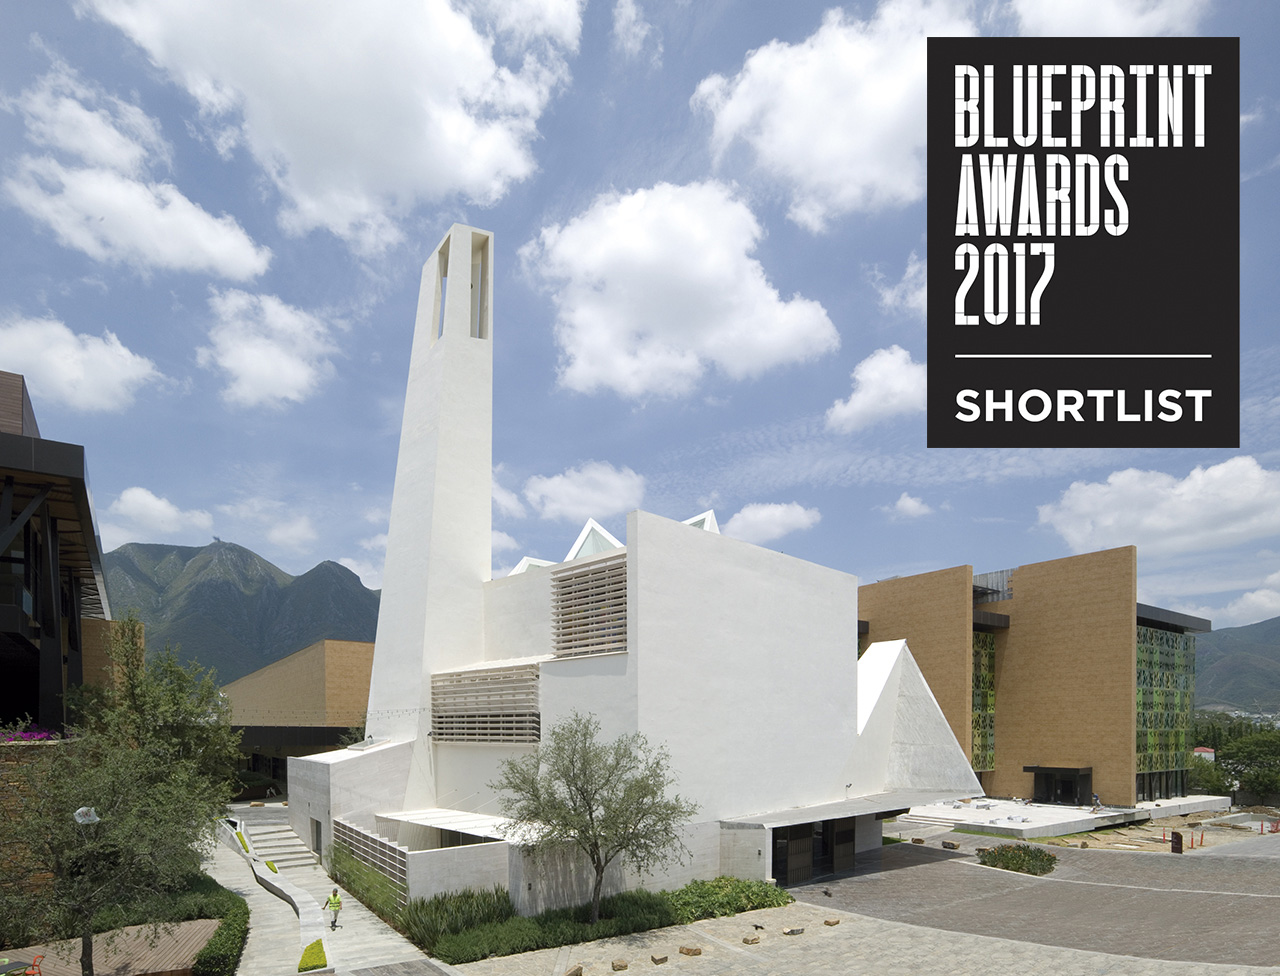 Shortlisted at Blueprint Awards 2017